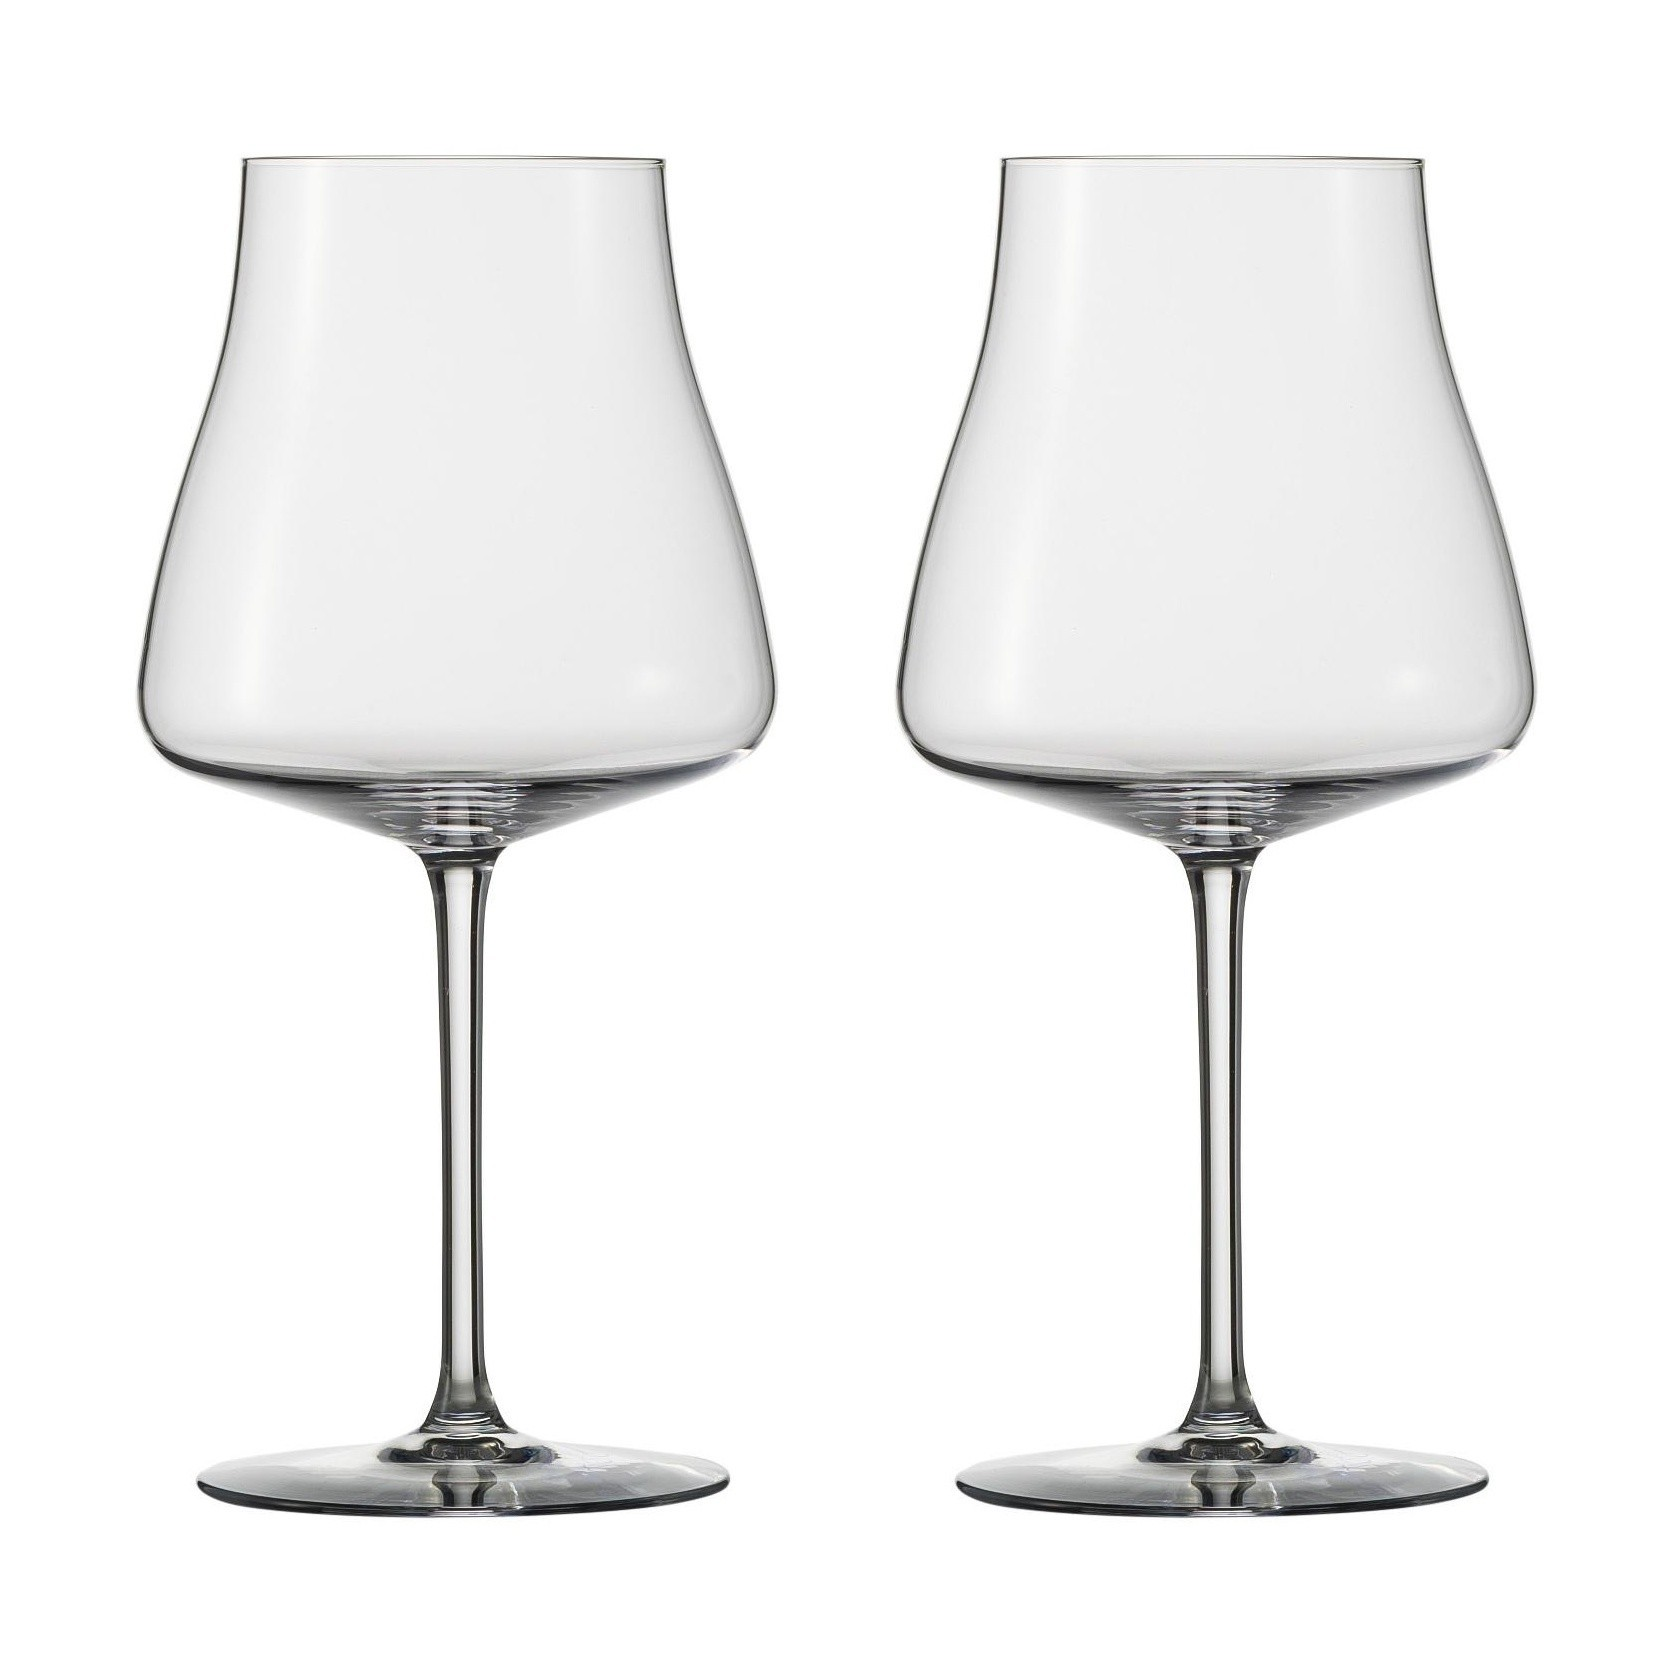 Chardonnay Wine Glass Wine Classics Chardonnay Wine Glass Set Of 2